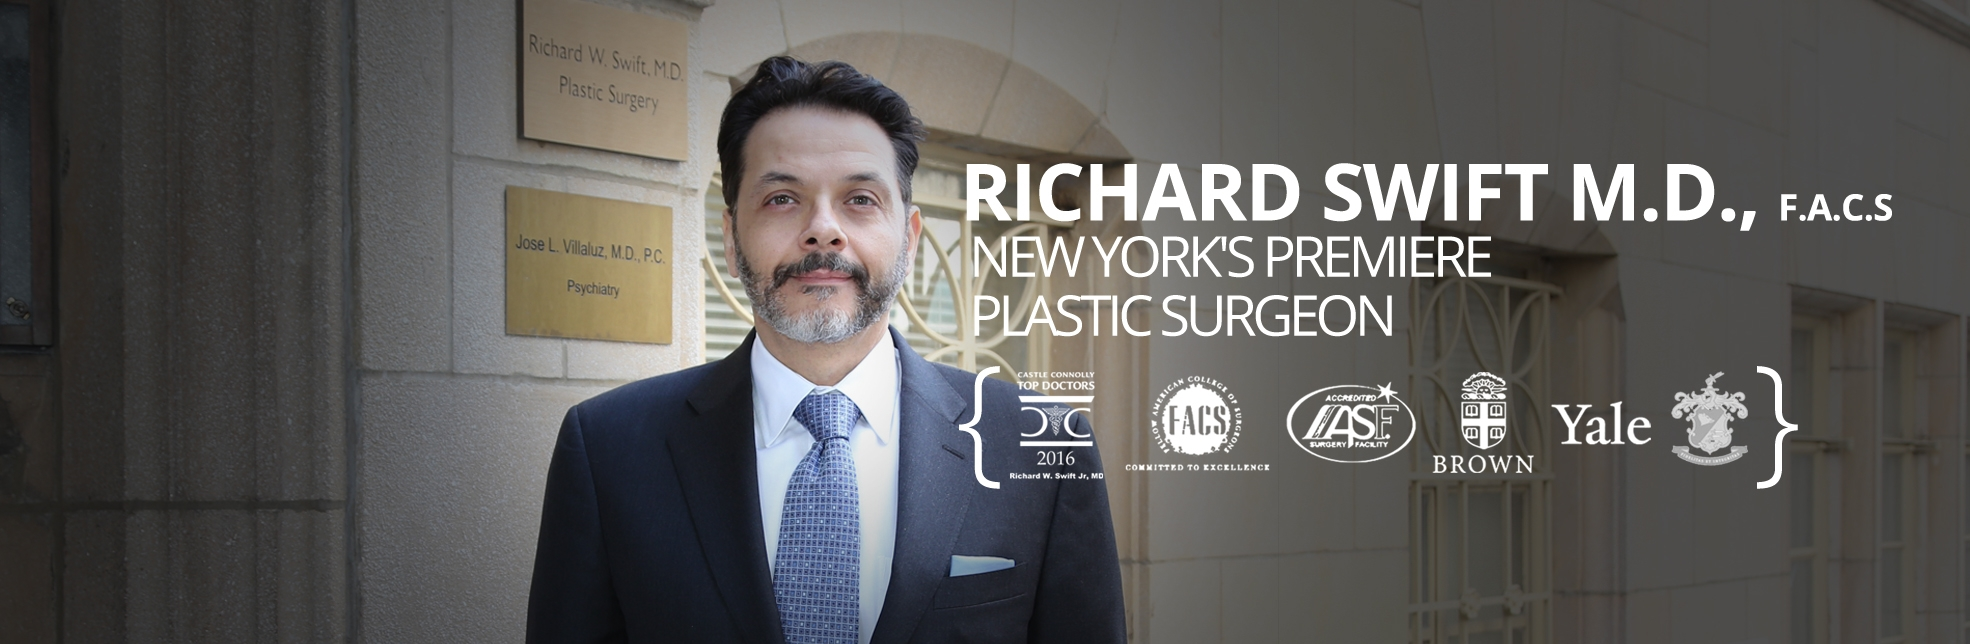 Dr. Richard Swift  (@richardswiftmd) Cover Image